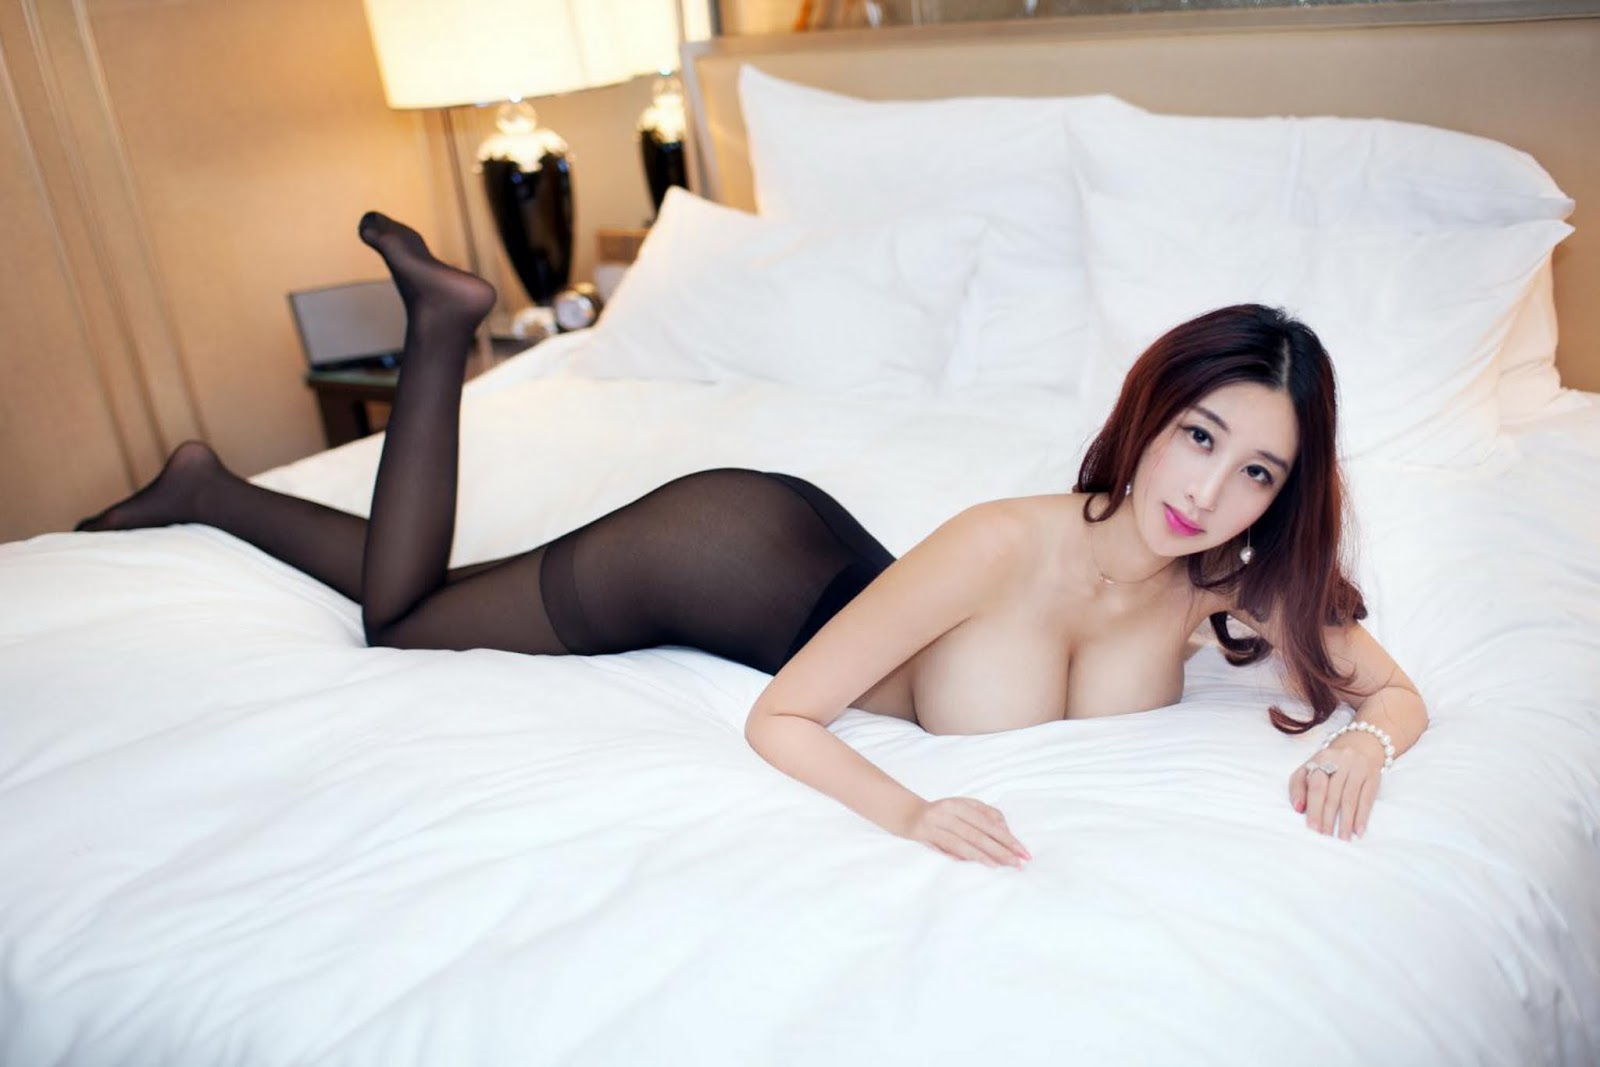 31 - Lake Model Sexy TUIGIRL NO.52 Hot